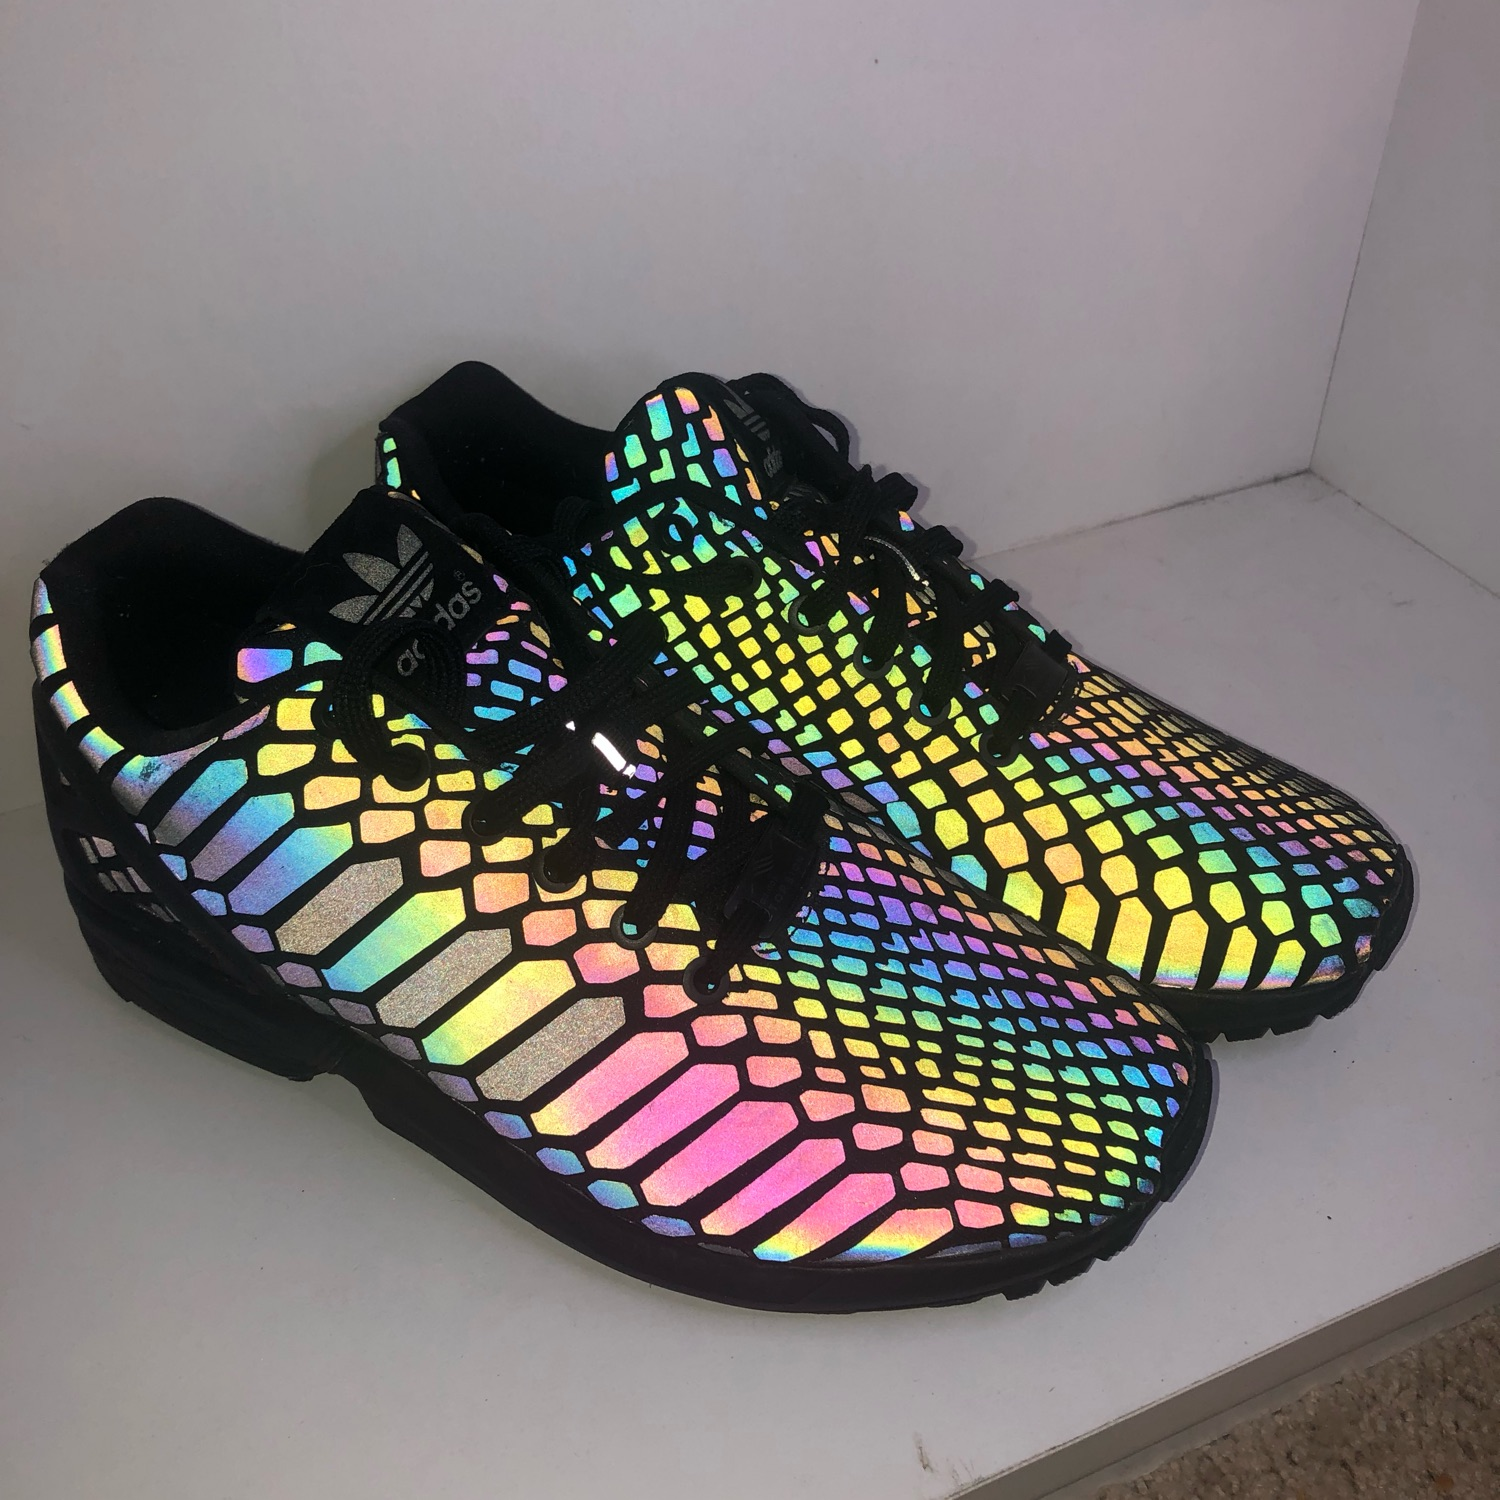 detailed look 6a05f abe15 Adidas Zx Flux Xeno Torsion Black Sz 8.5